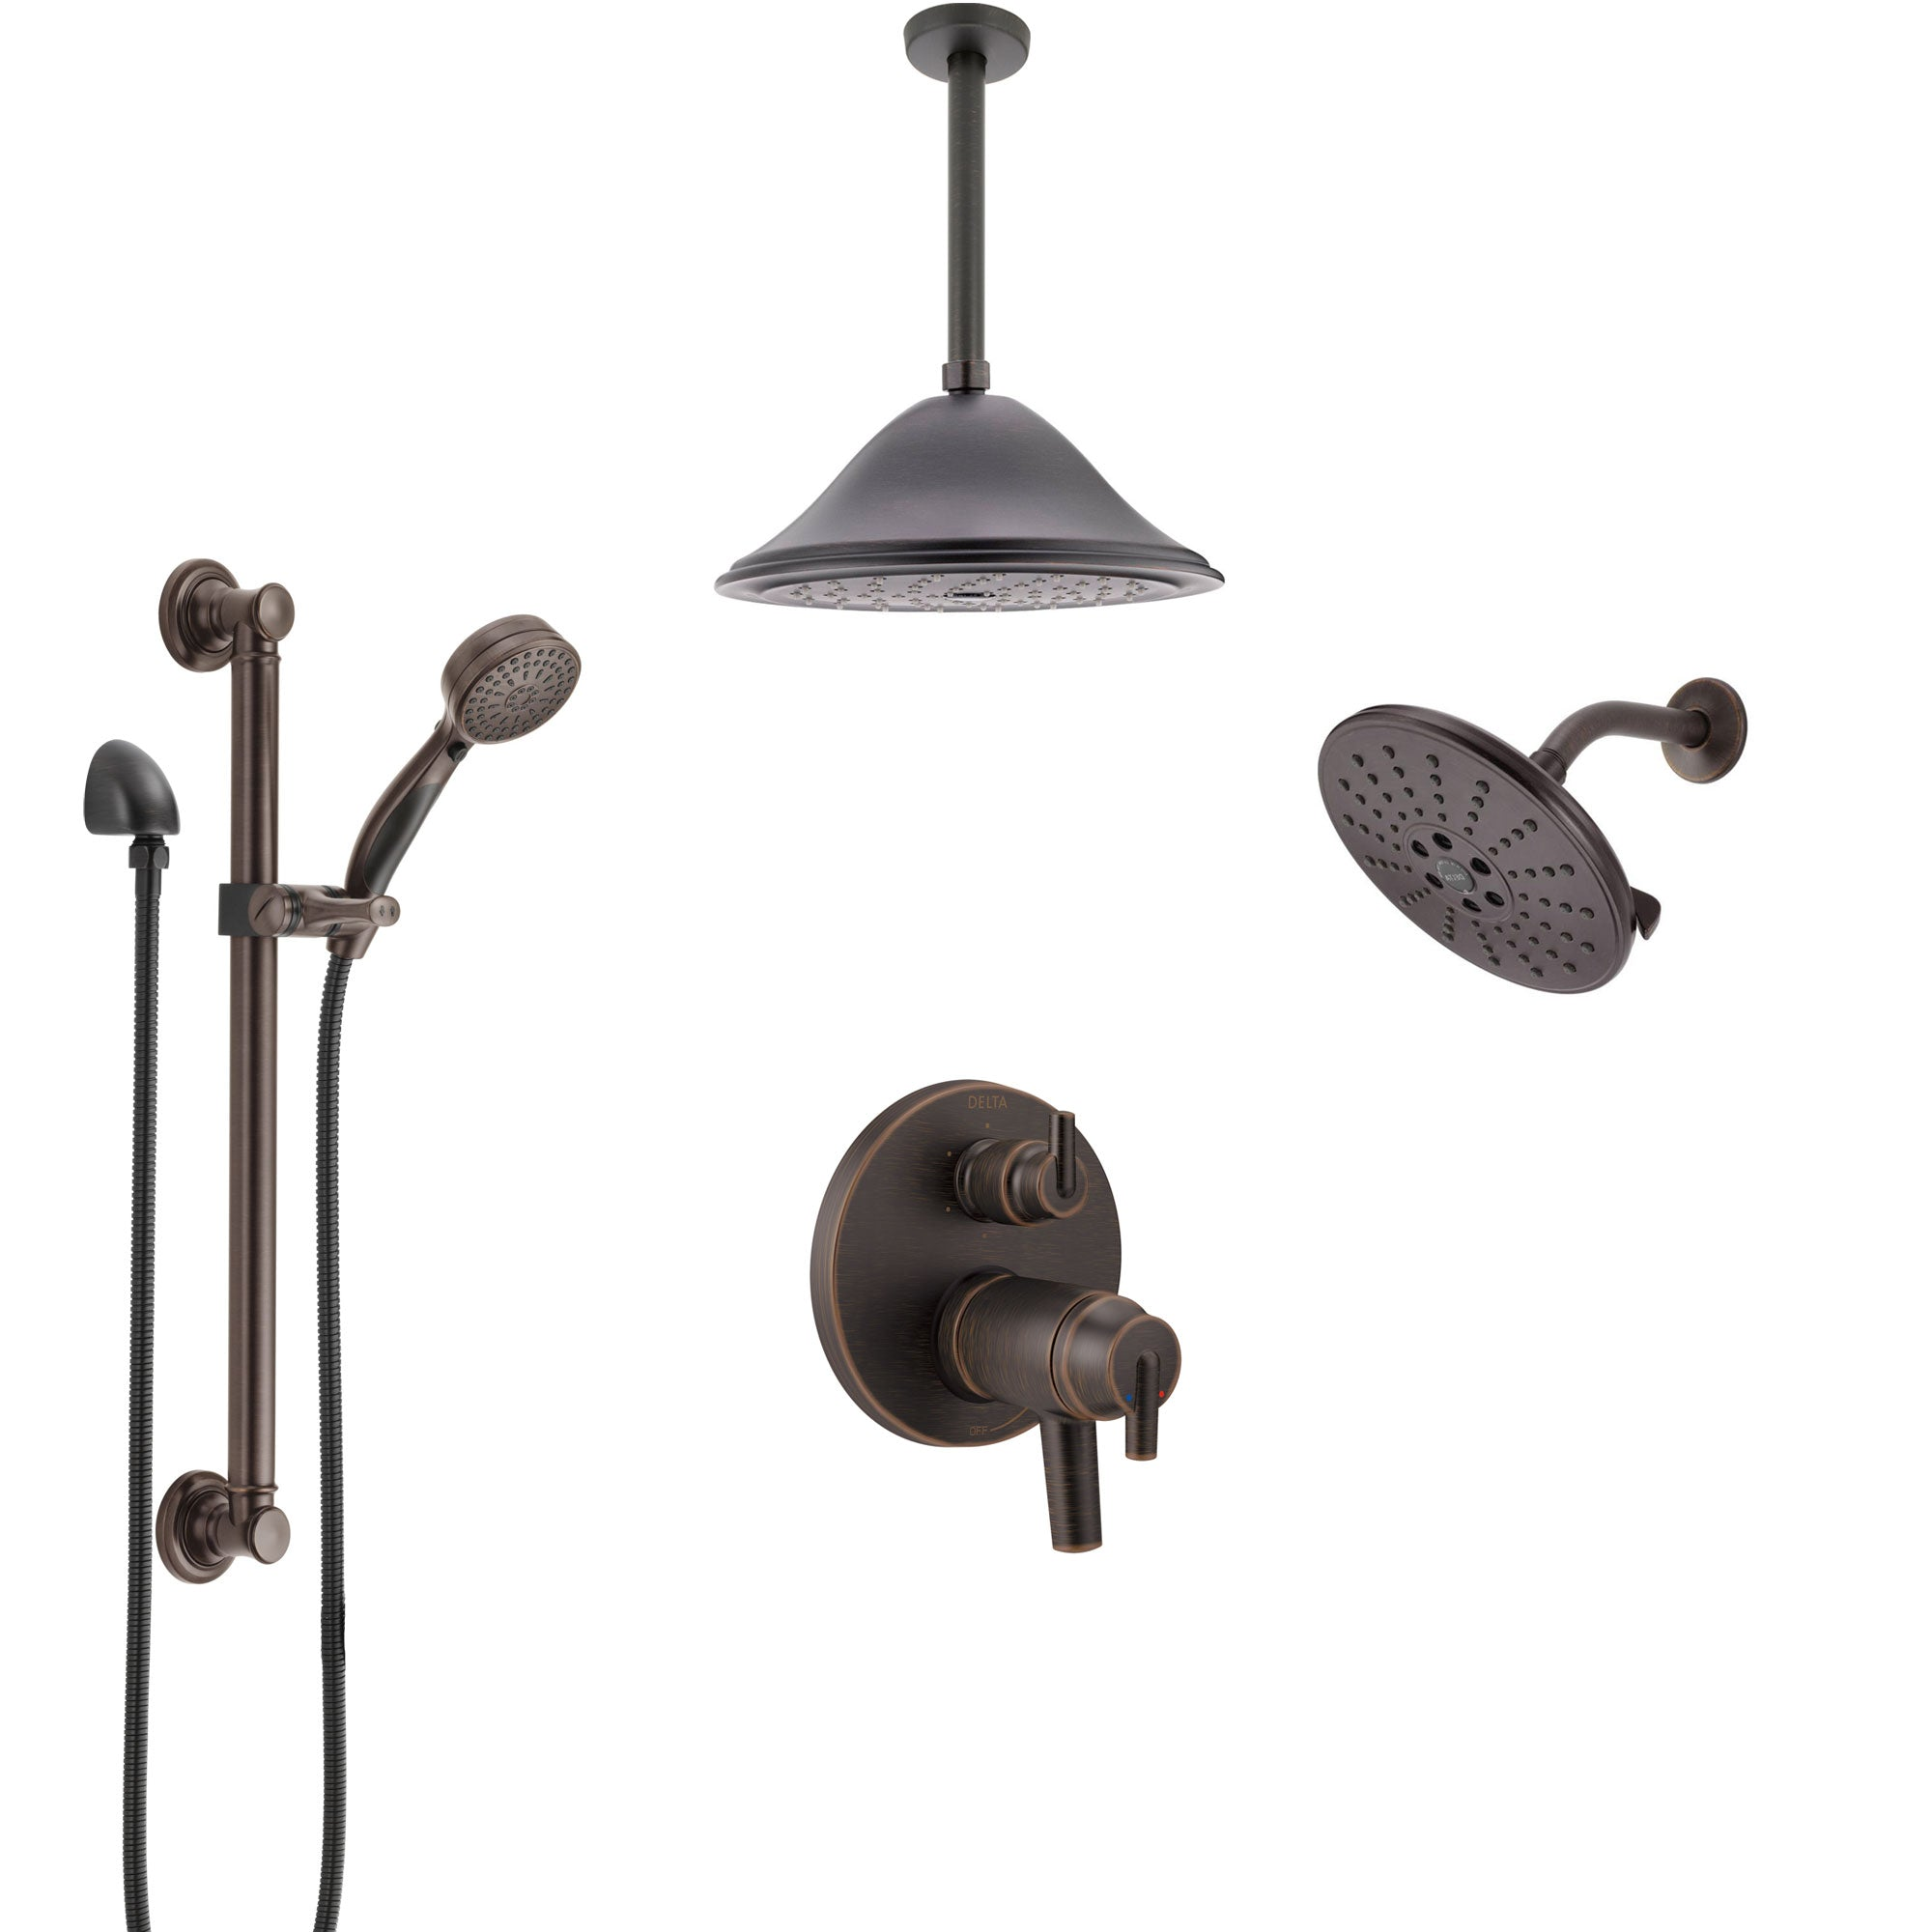 Delta Trinsic Venetian Bronze Dual Thermostatic Control Shower System, Showerhead, Ceiling Showerhead, Grab Bar Hand Spray SS27T959RB11